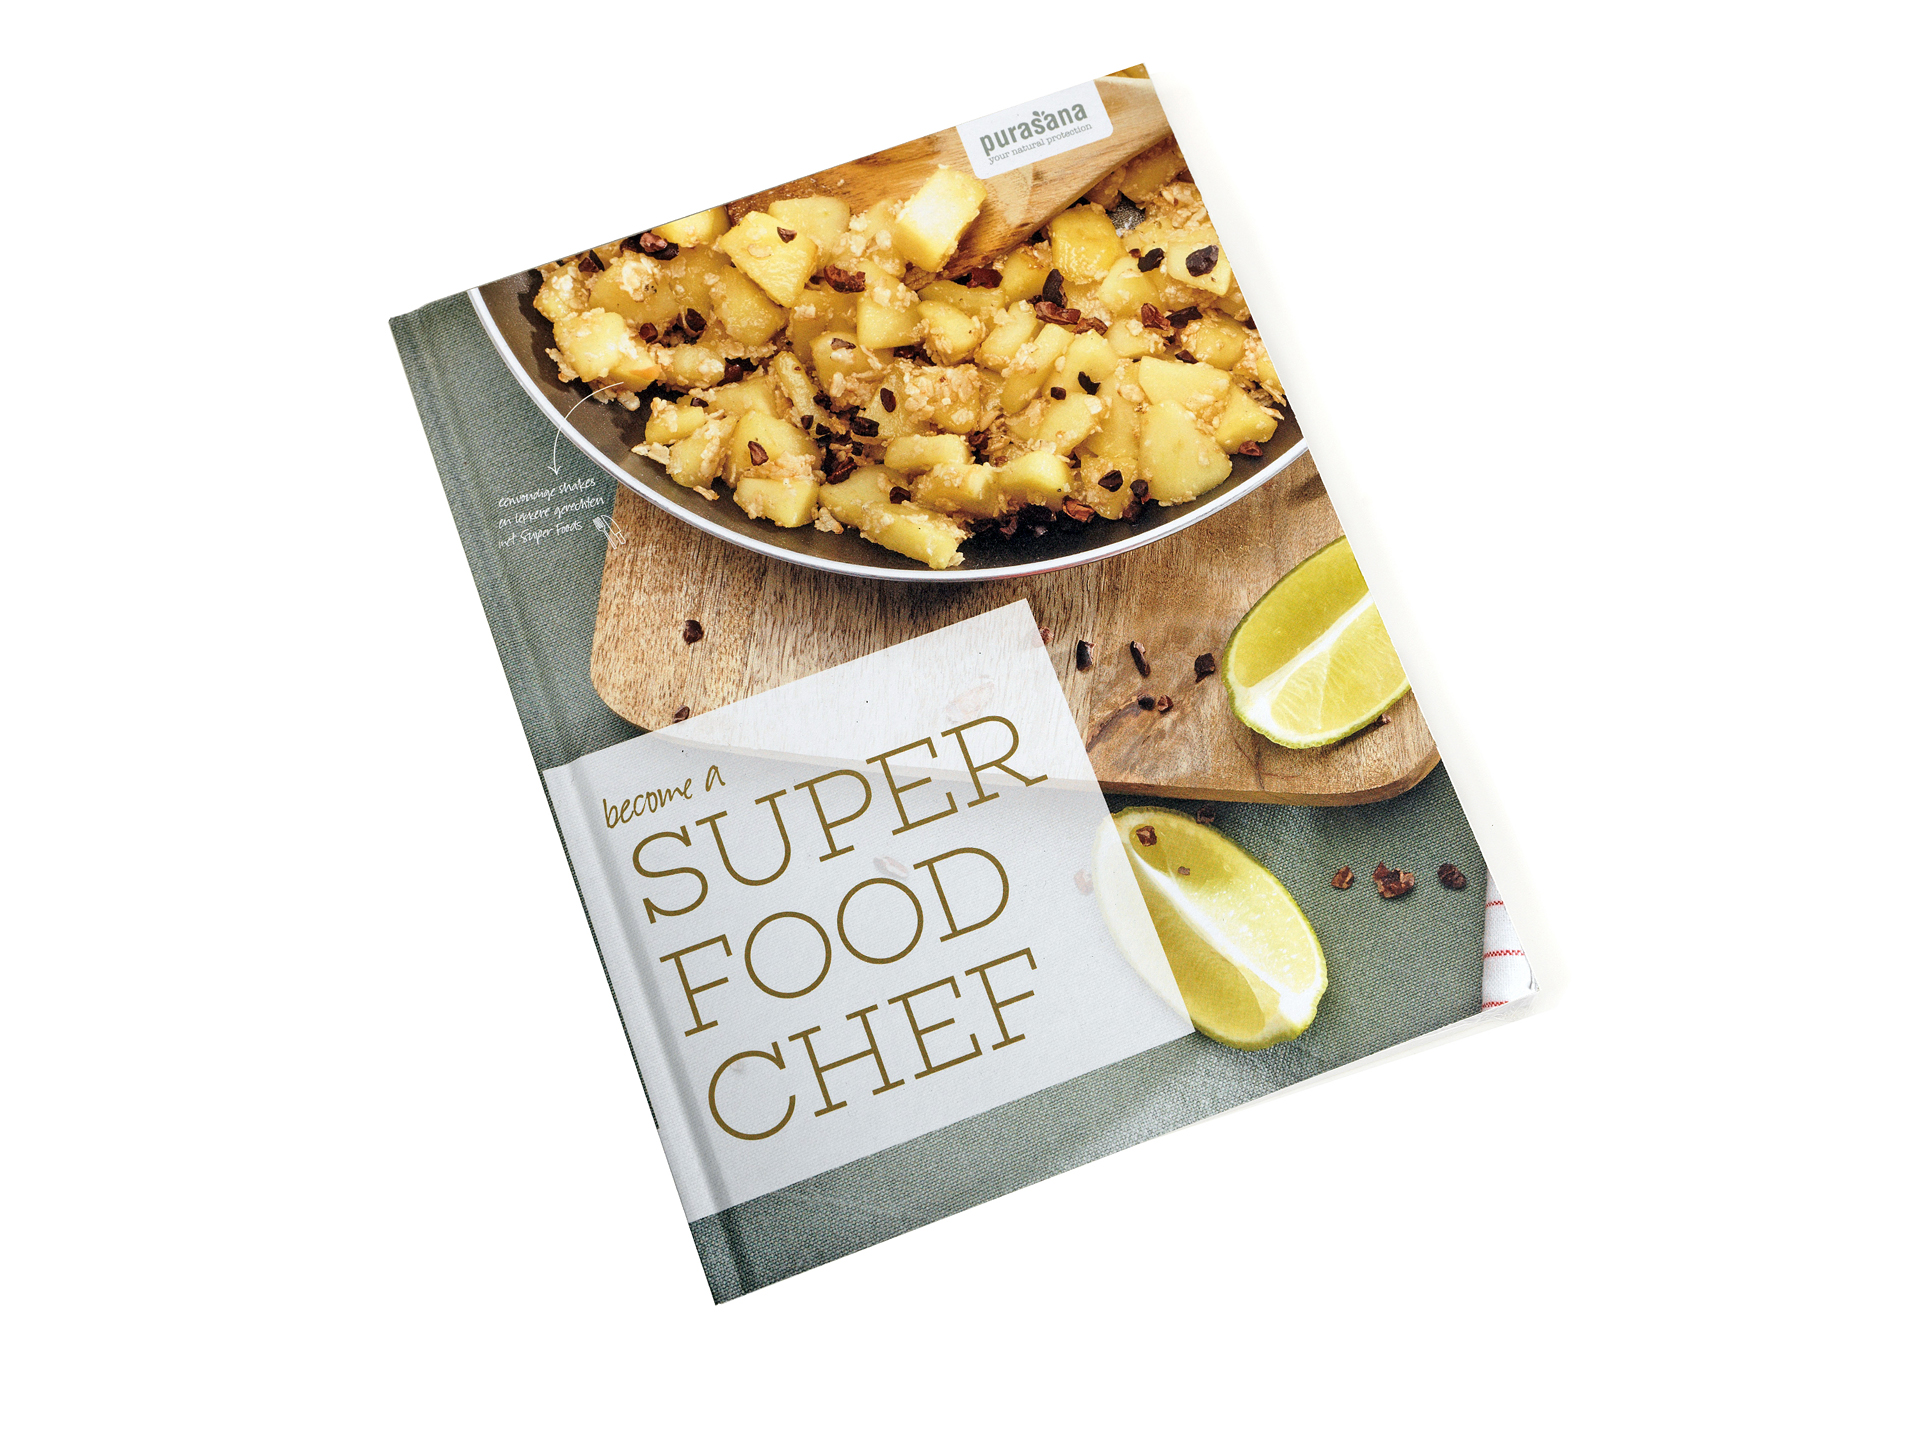 Become-a-superfood-chef